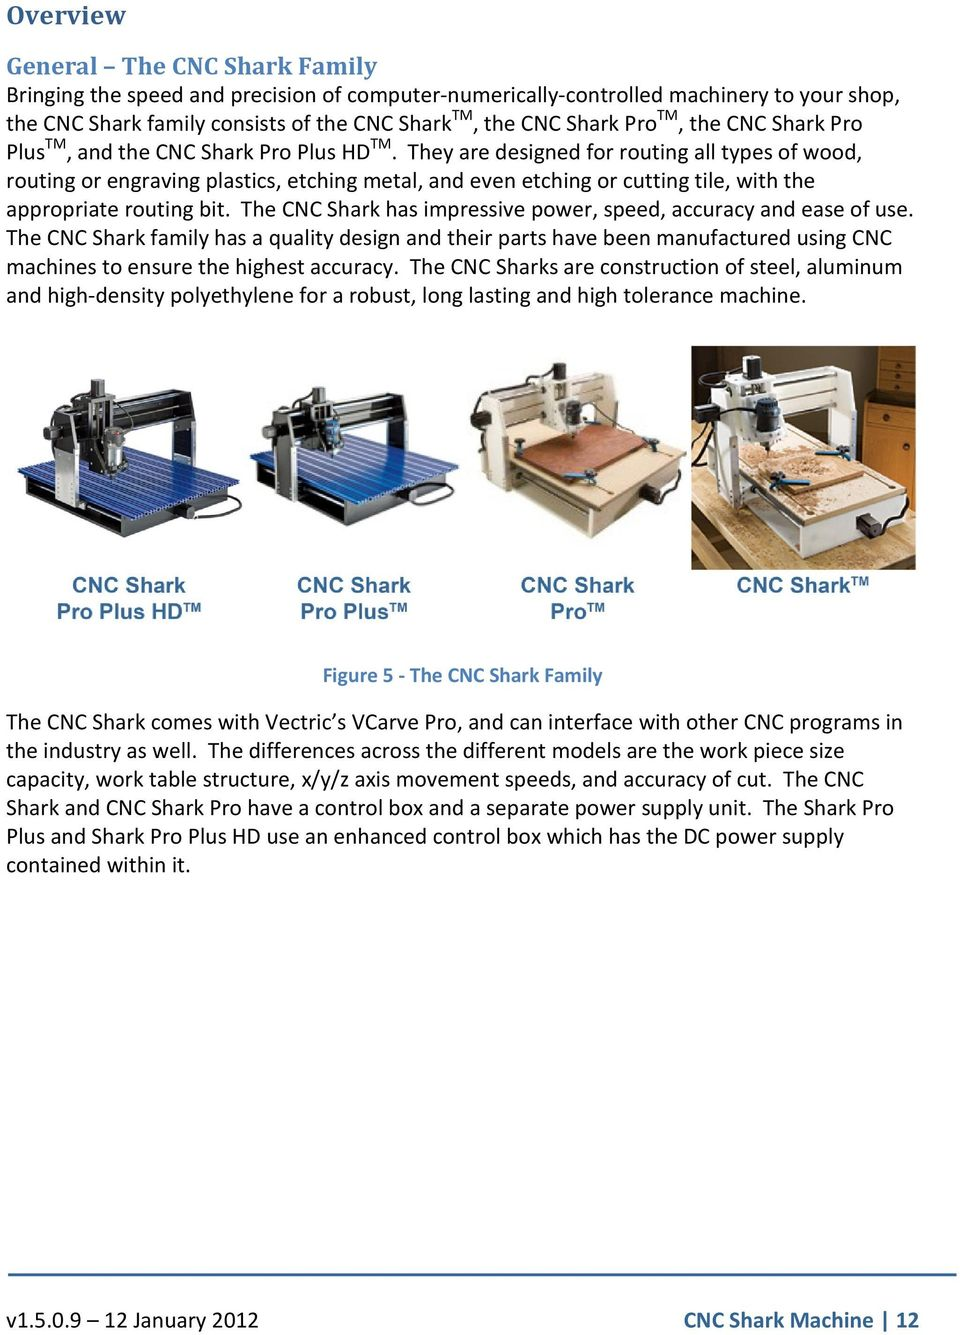 Cnc Shark Tm Family 1 Pdf The Usb Router Repeater Is Made From Durable Aluminum It39s Nearly They Are Designed For Routing All Types Of Wood Or Engraving Plastics Etching